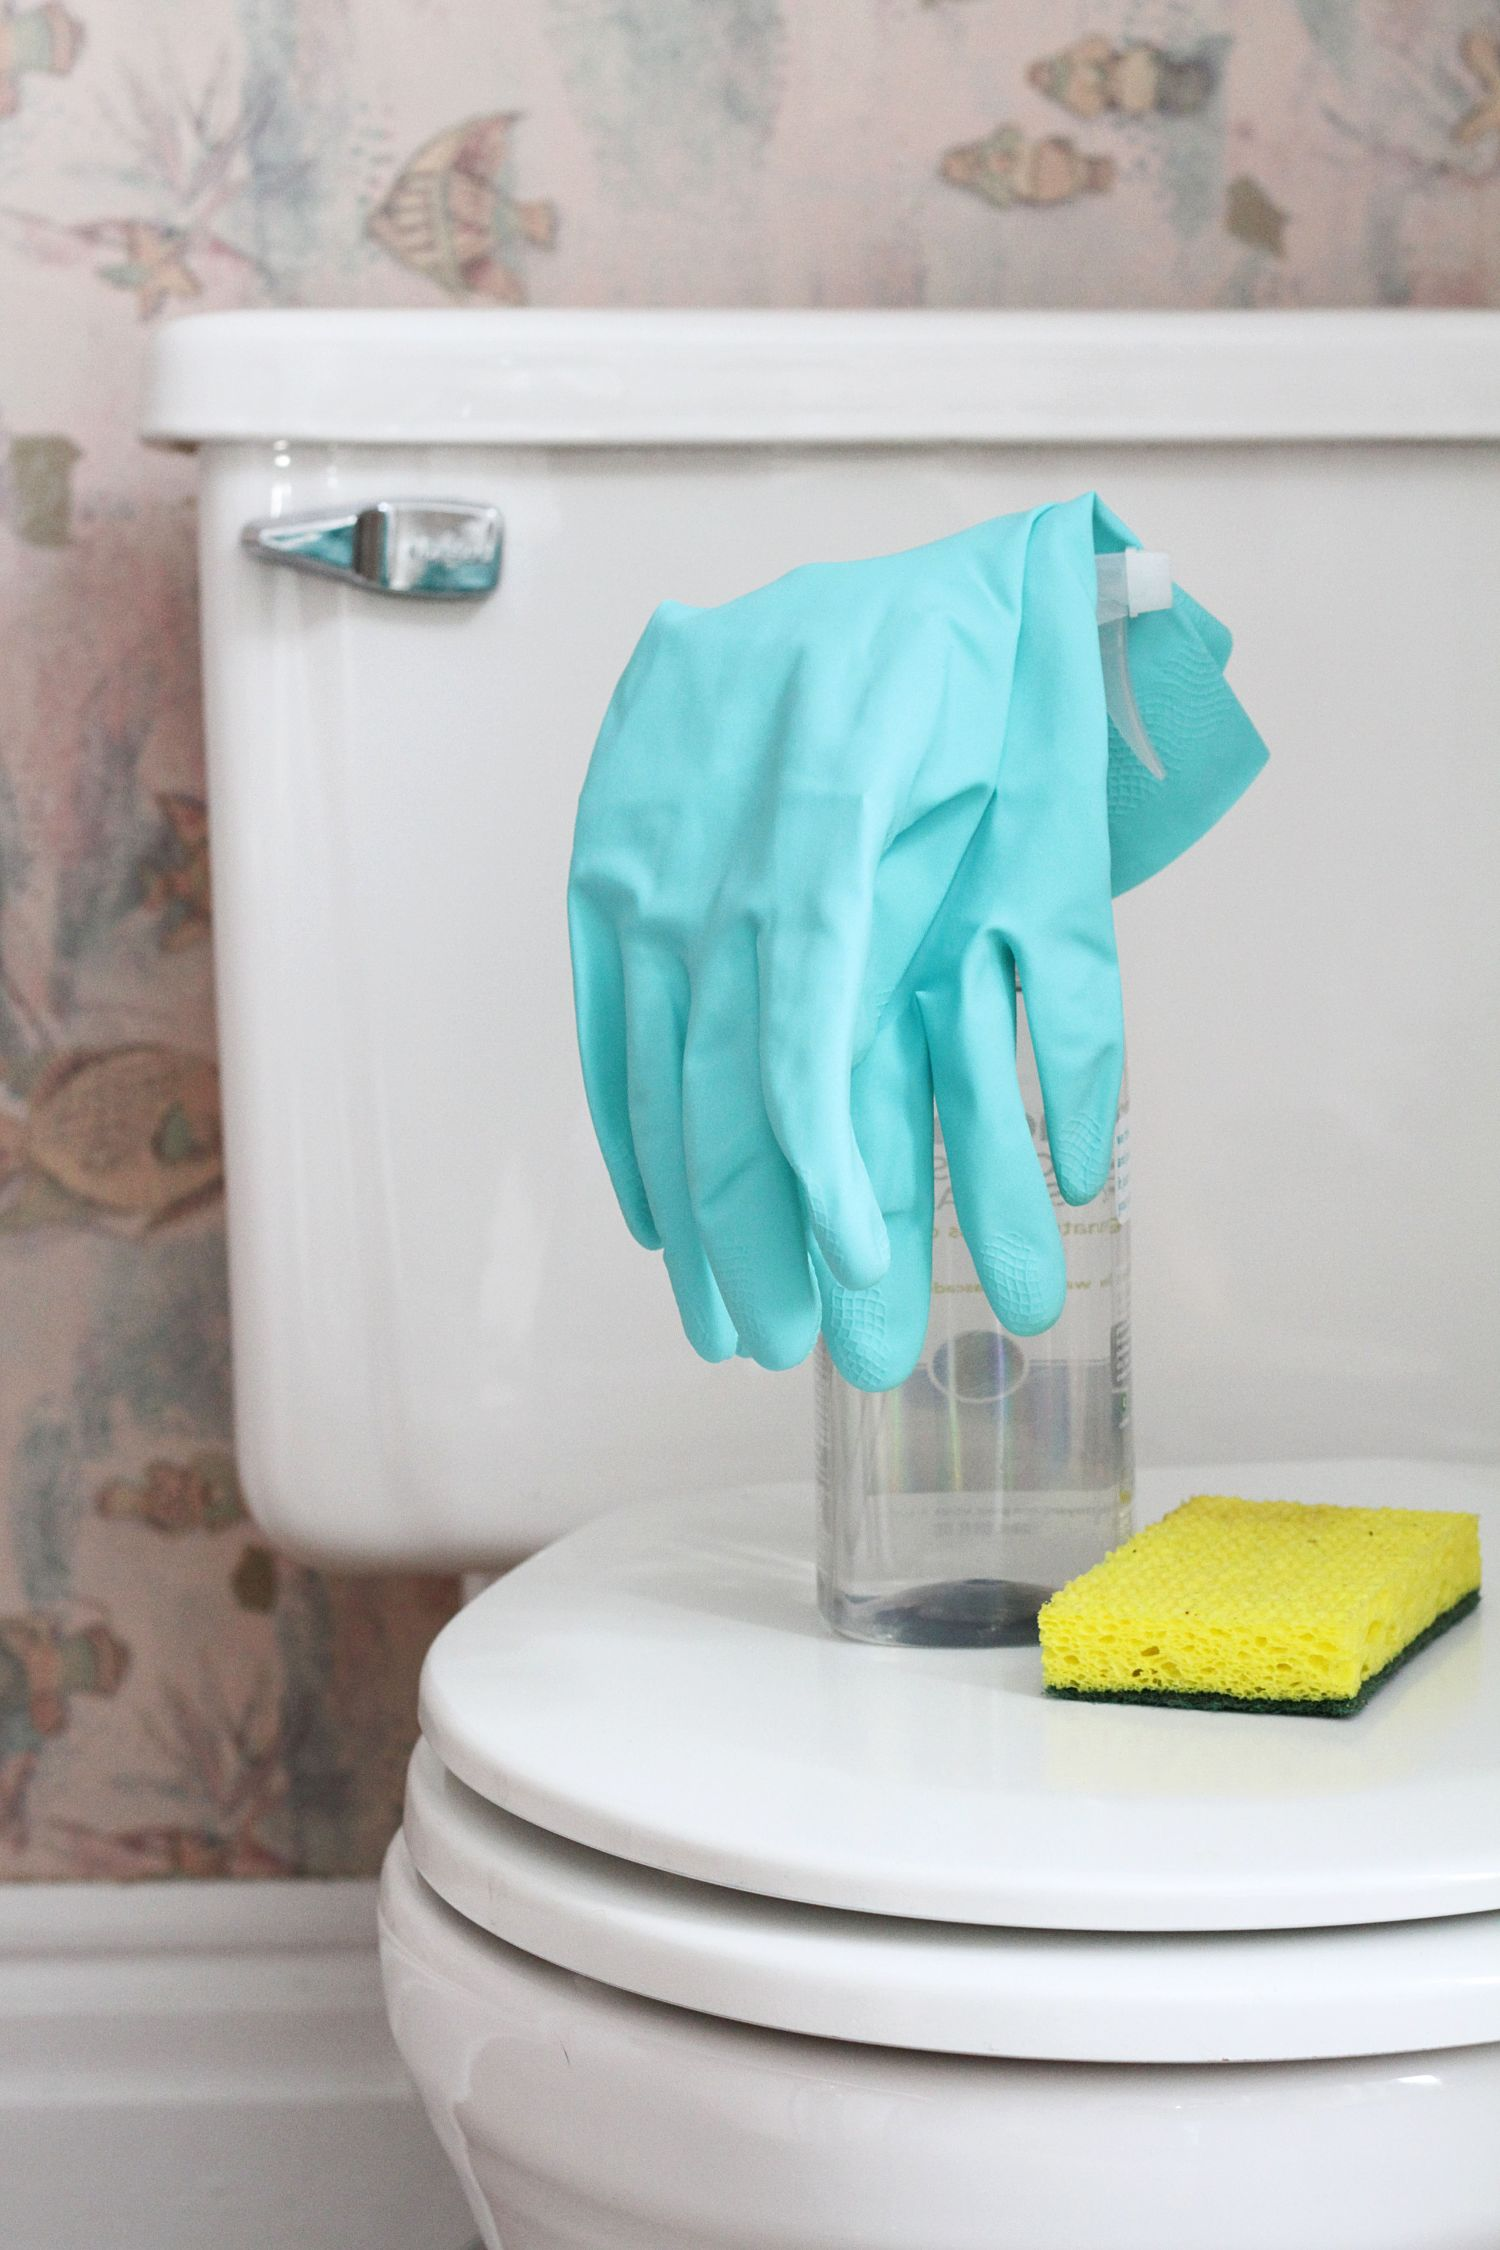 How To Clean Your Toilet Apartment Therapy